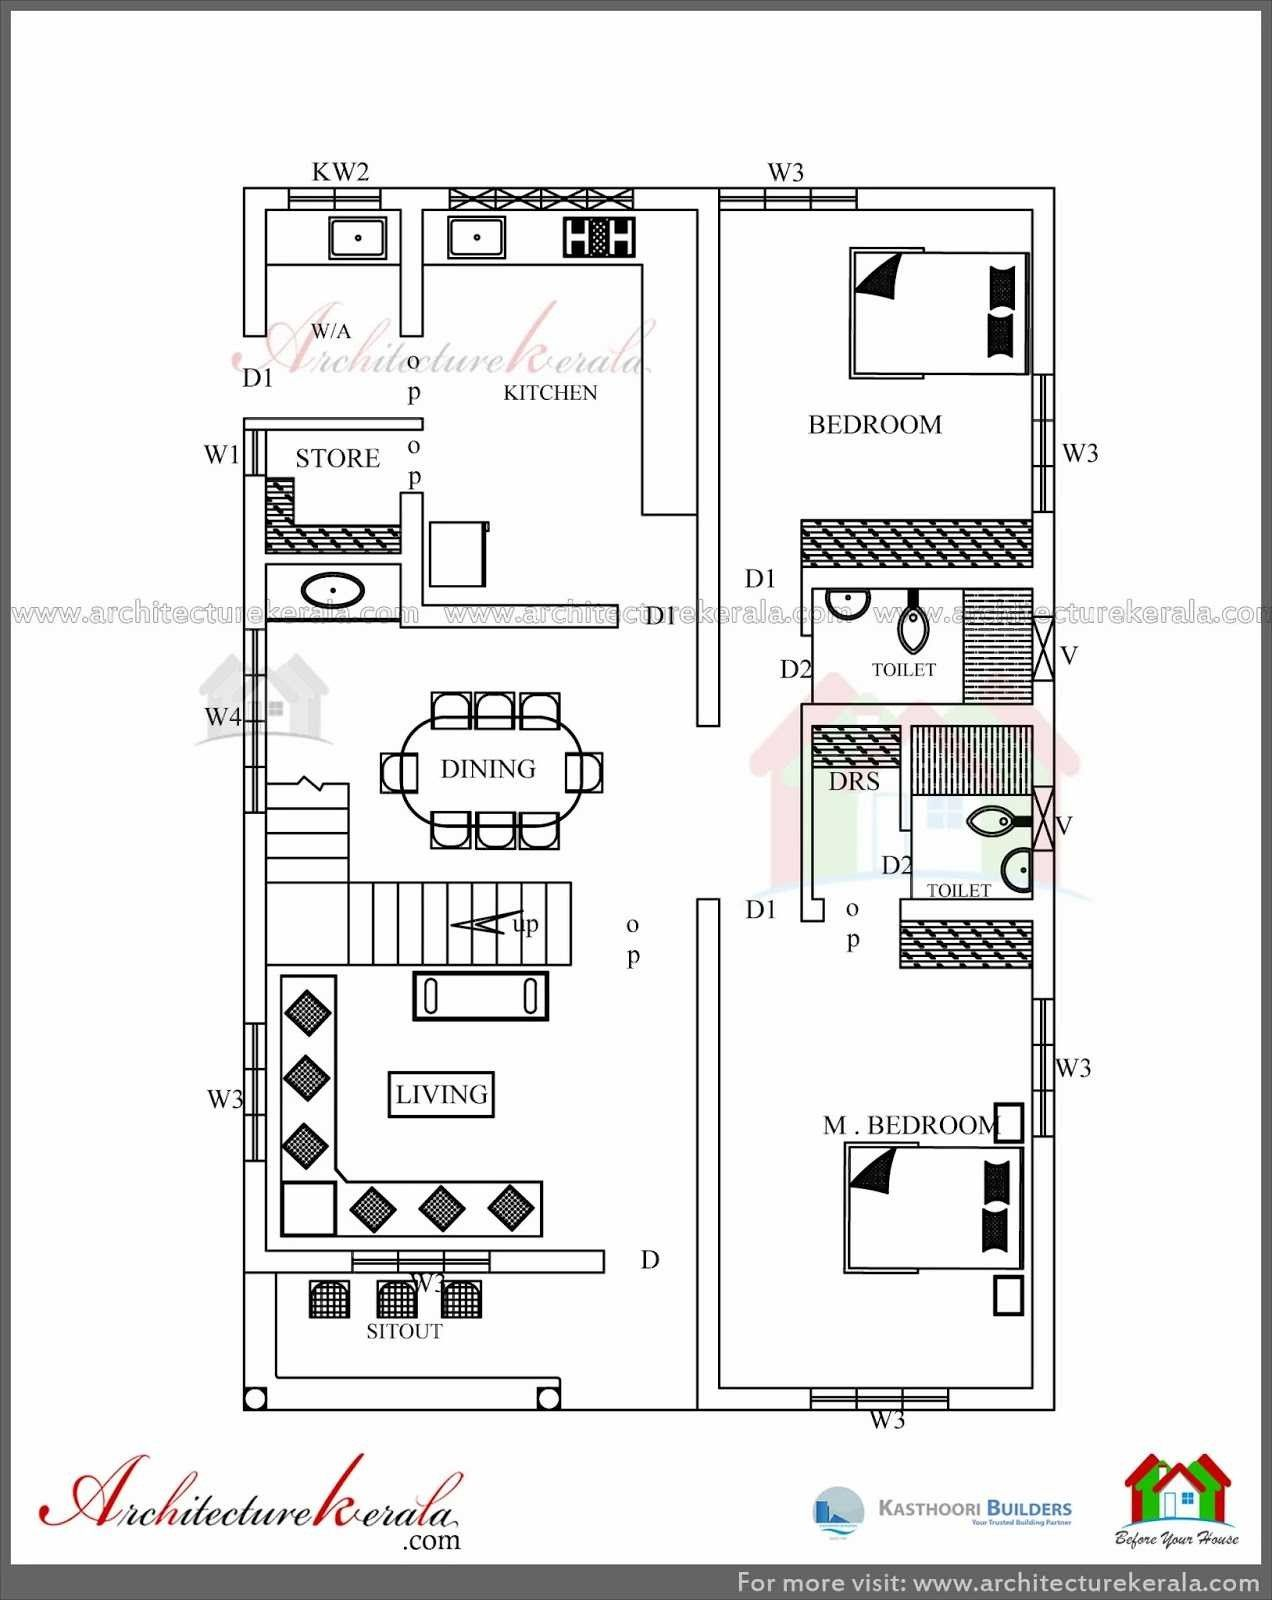 Glamorous 40 X50 House Plans Design Ideas Of 28 Home 30 X